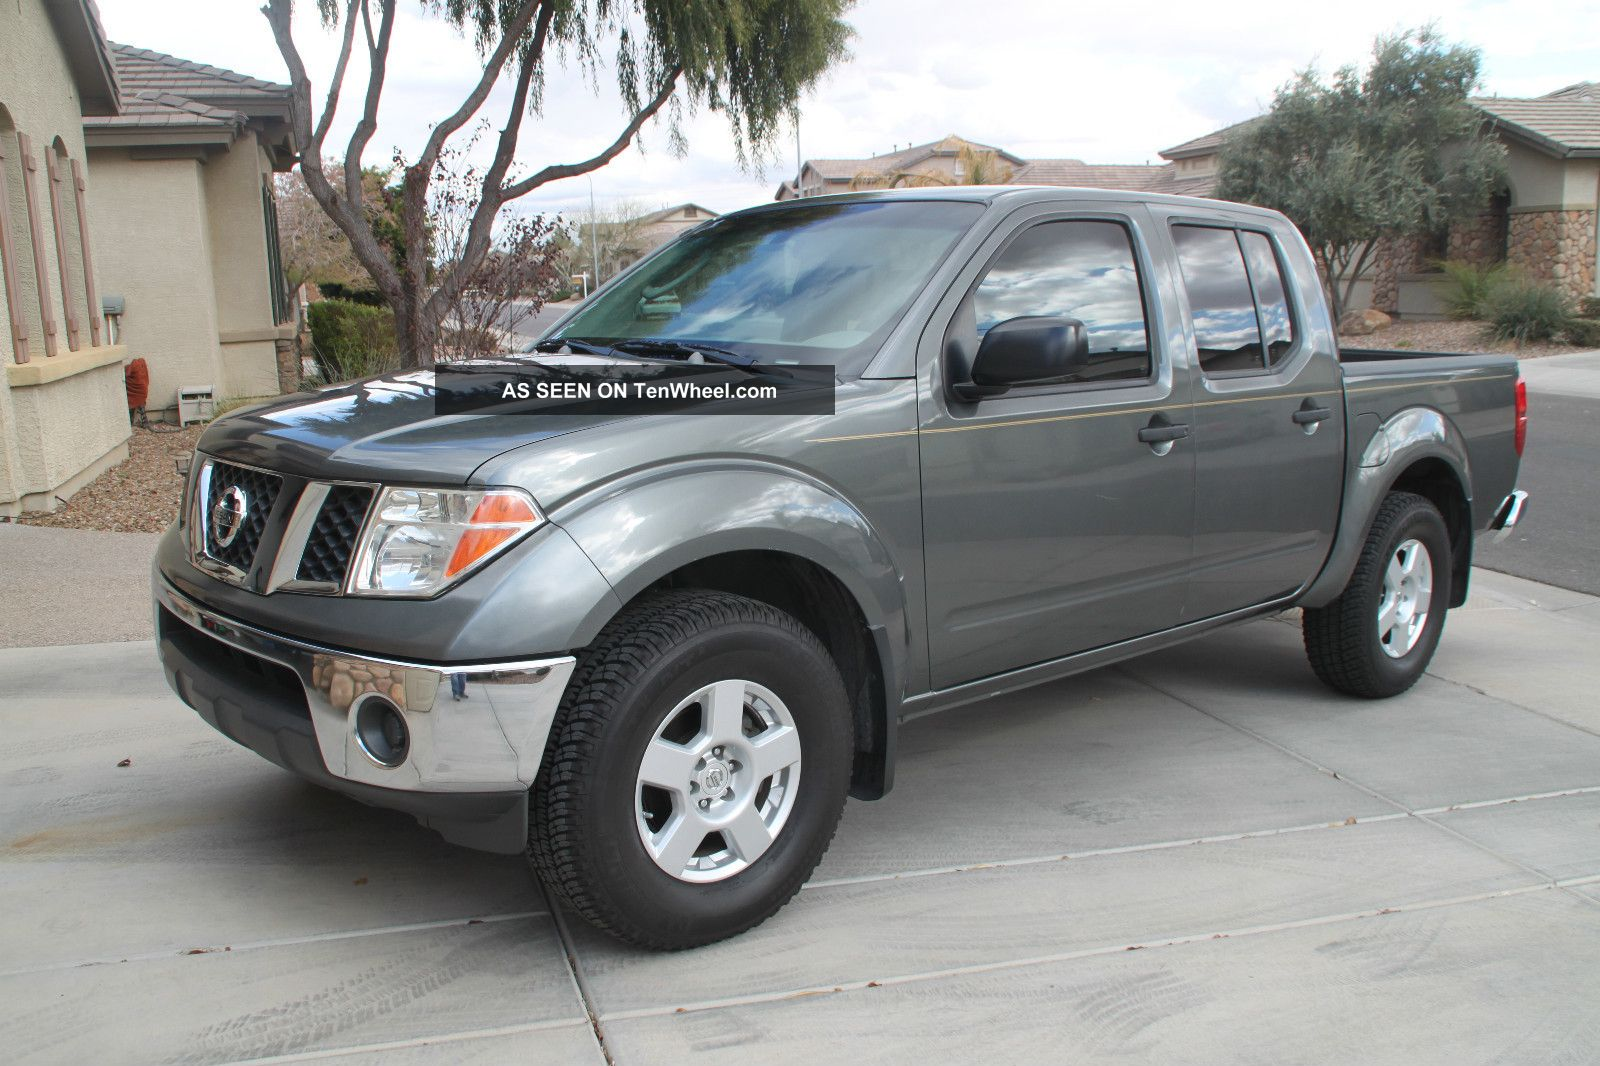 2006 Nissan Frontier Photos, Informations, Articles - BestCarMag.com